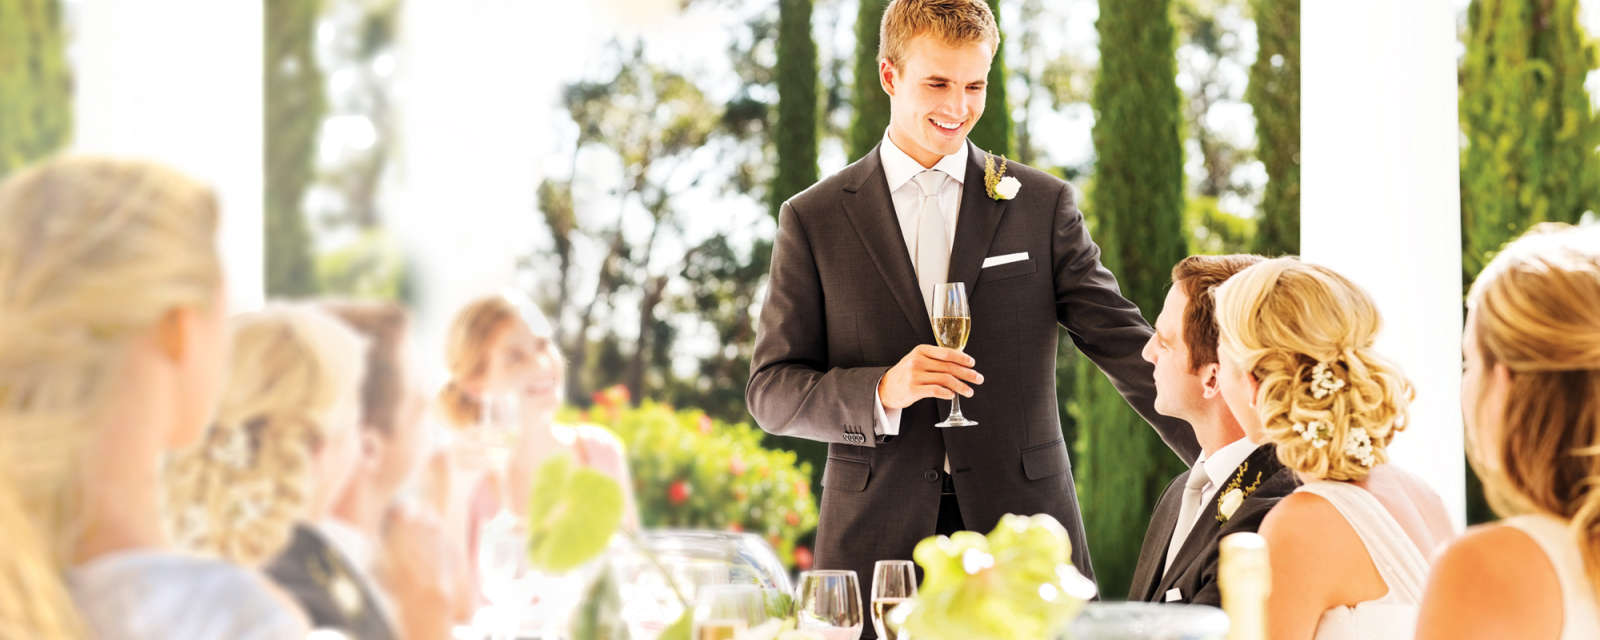 Articles for Brides & Grooms